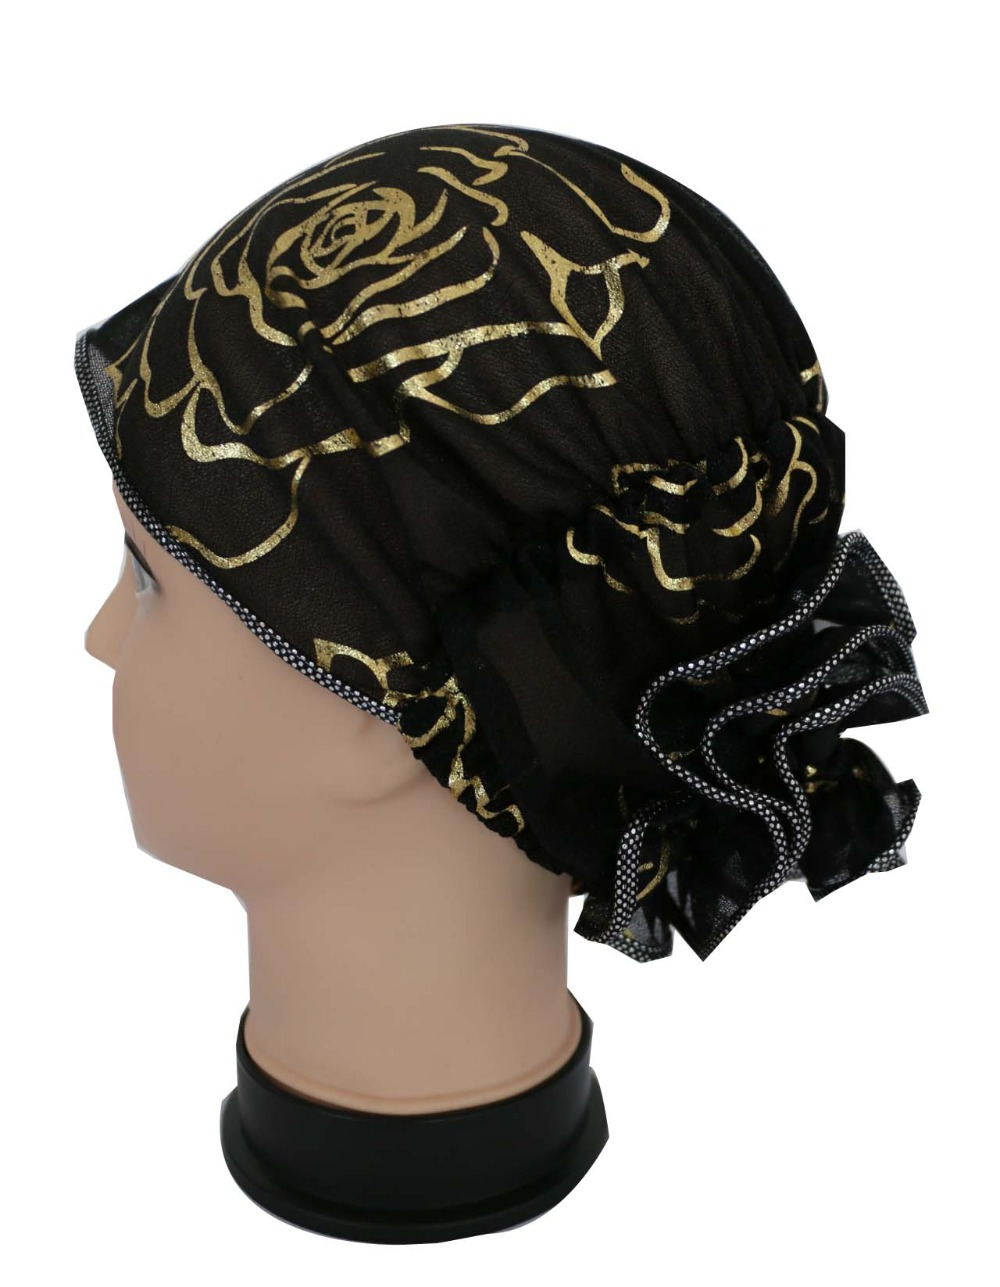 Free Shipping 2017 New Female Summer Black White Bronzing Rose Floral Muslim Hijab Caps Turban Hats For Womens kukmara к101